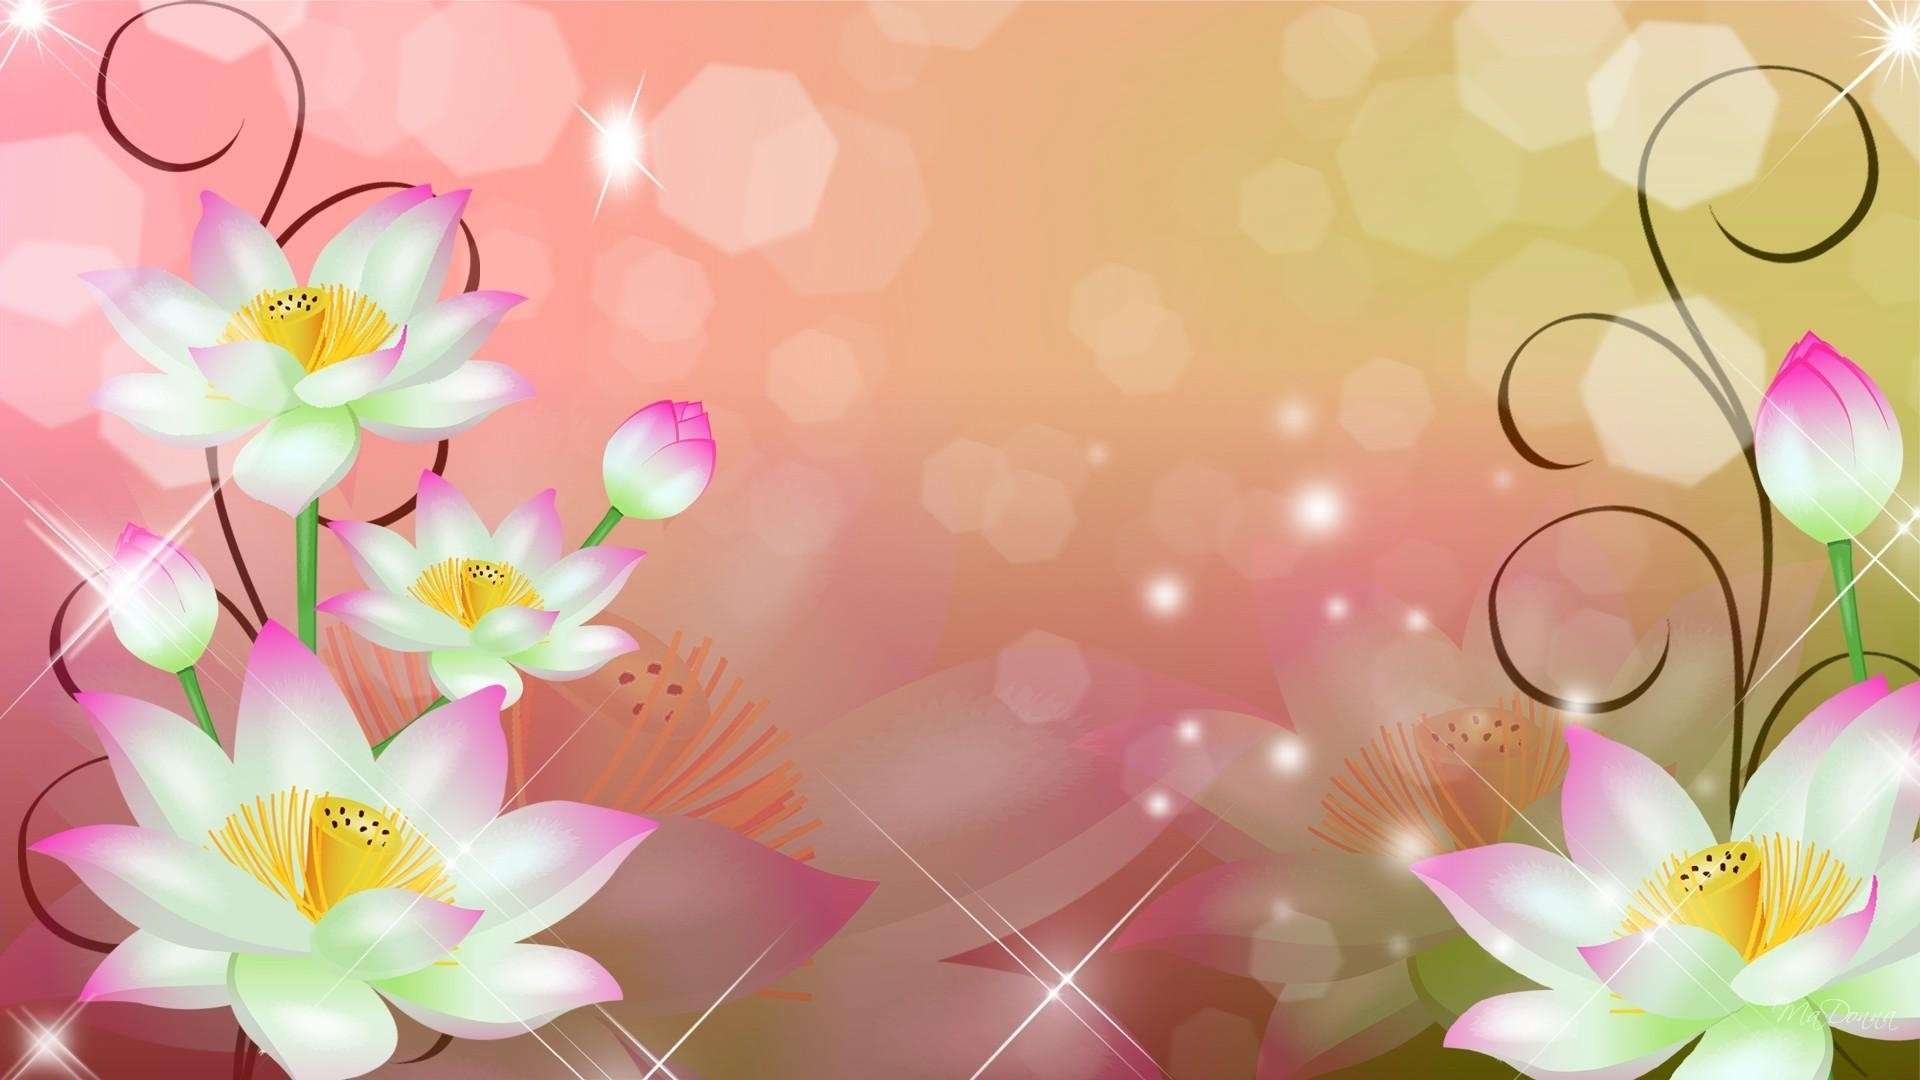 Flowers Abstract Backgrounds 1920x1080